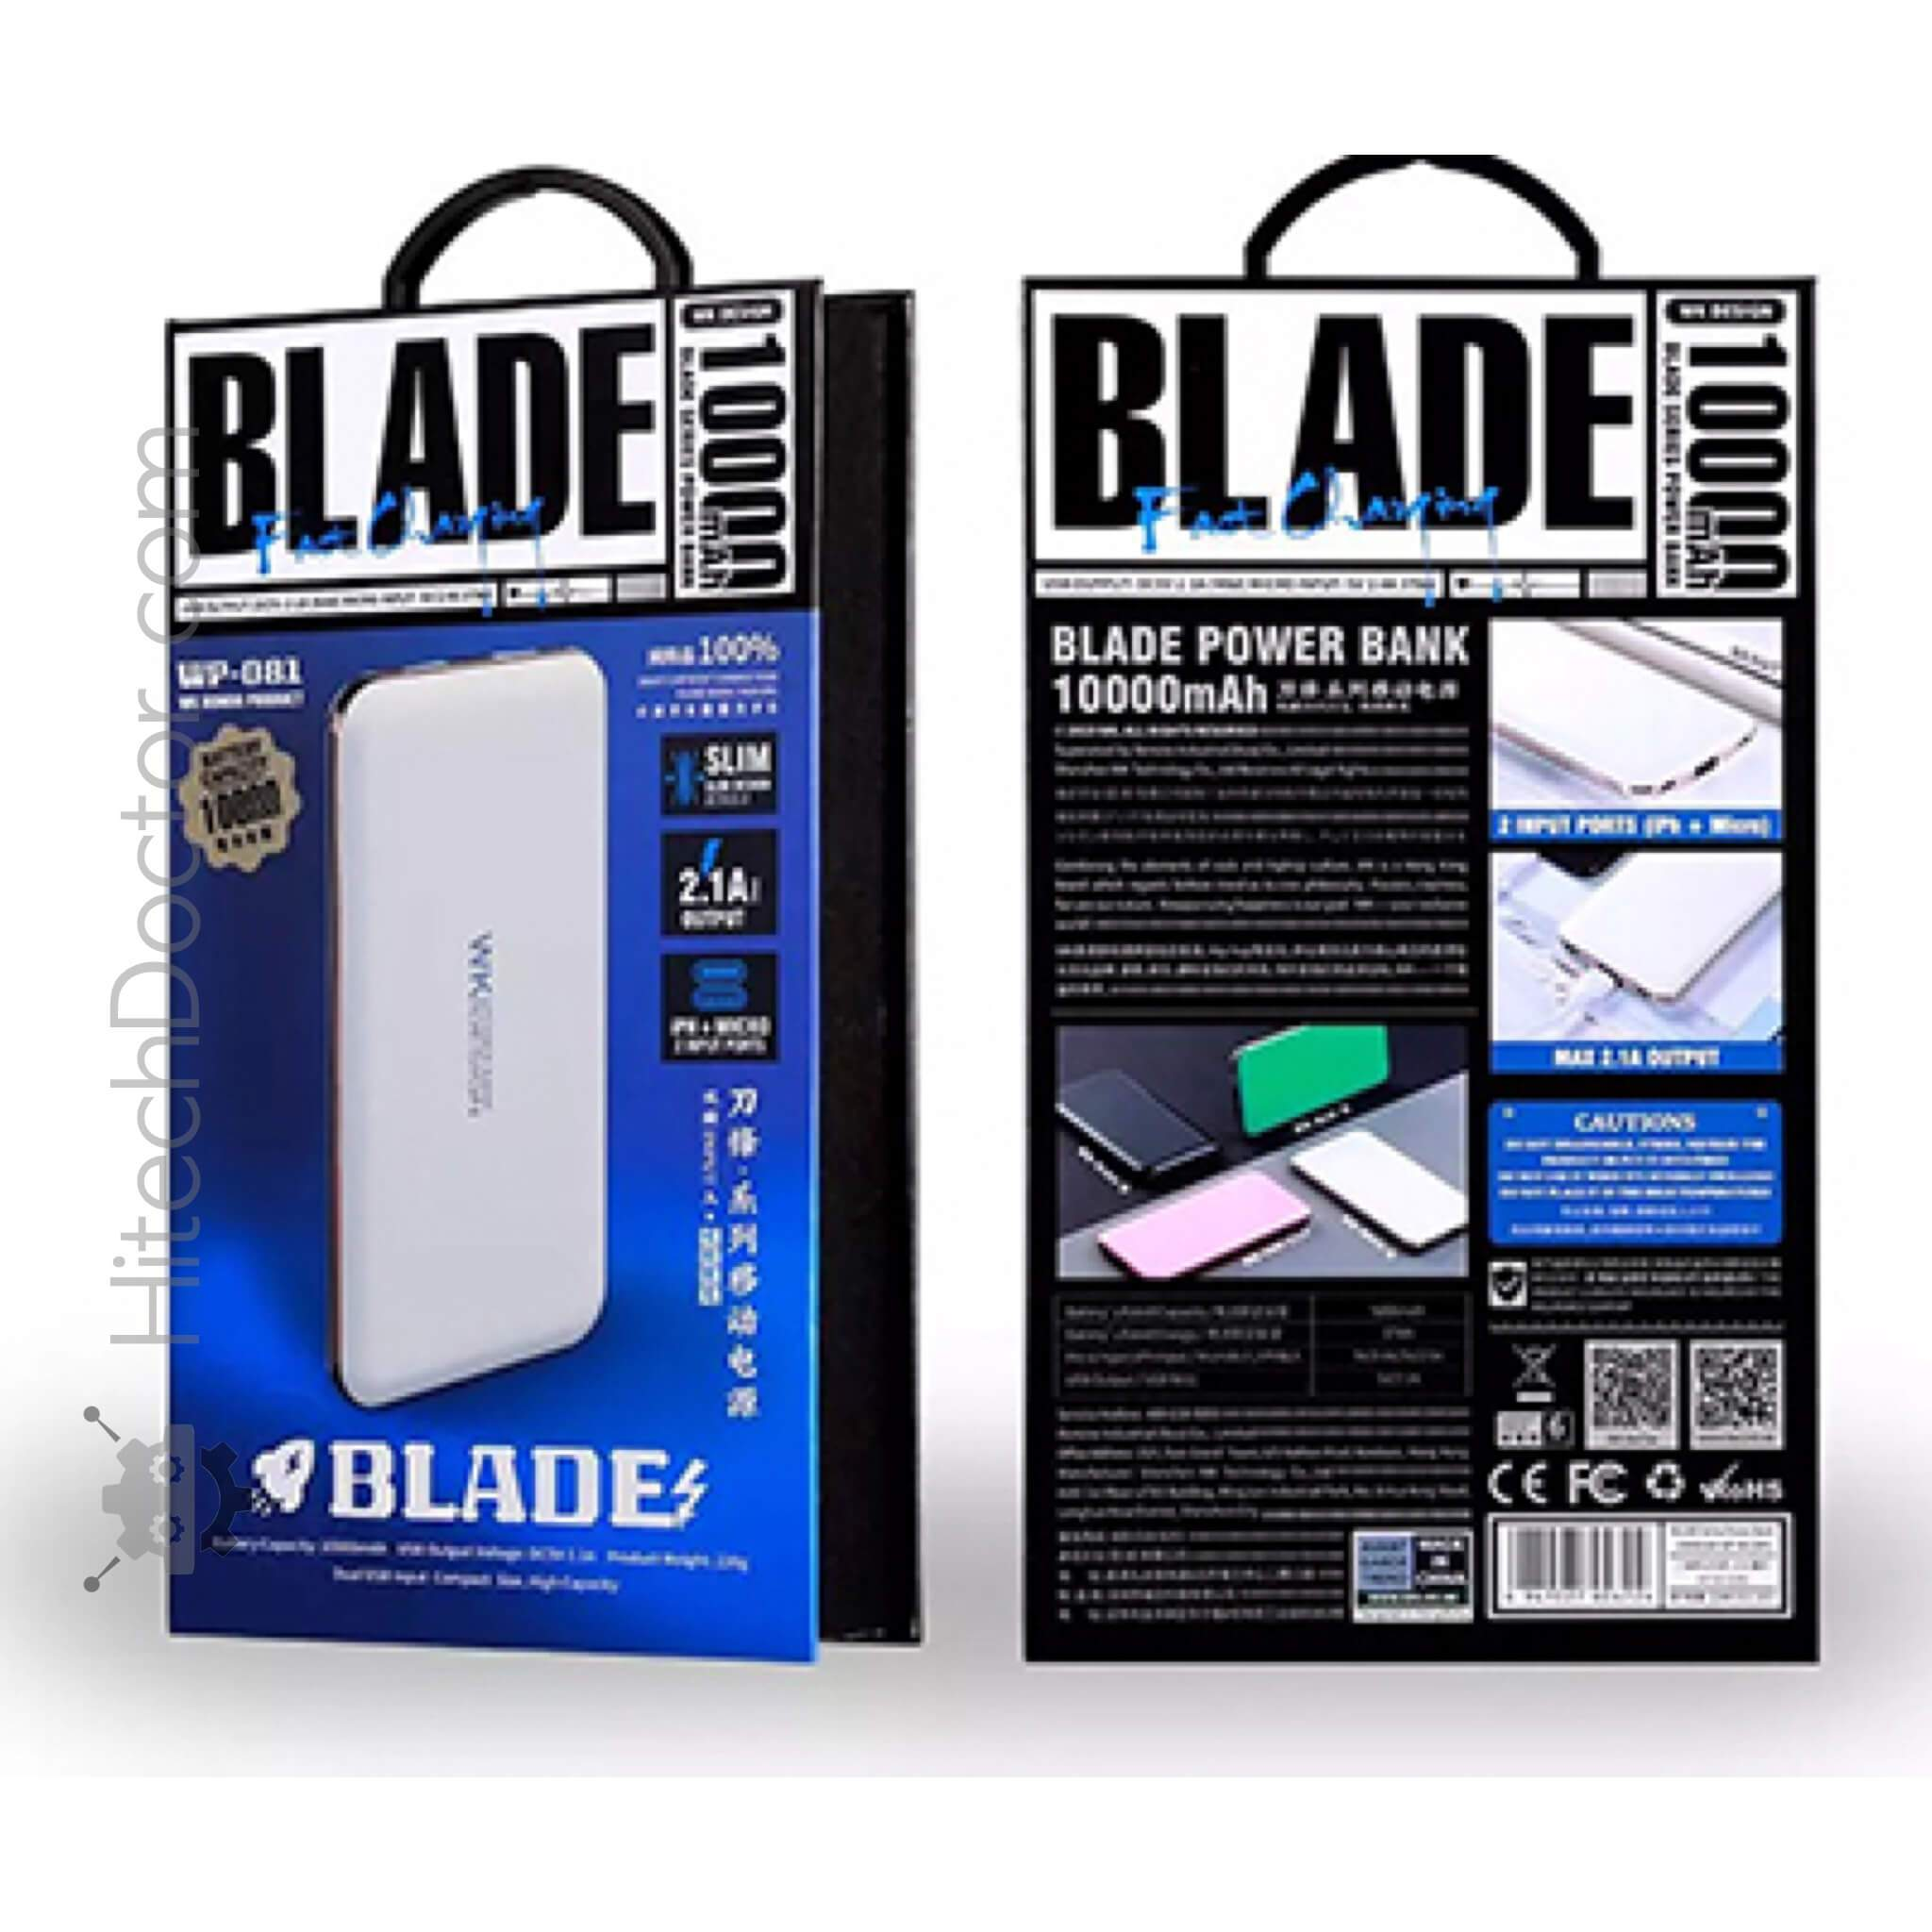 BLADE wk 10000mAh WP-081 Rose